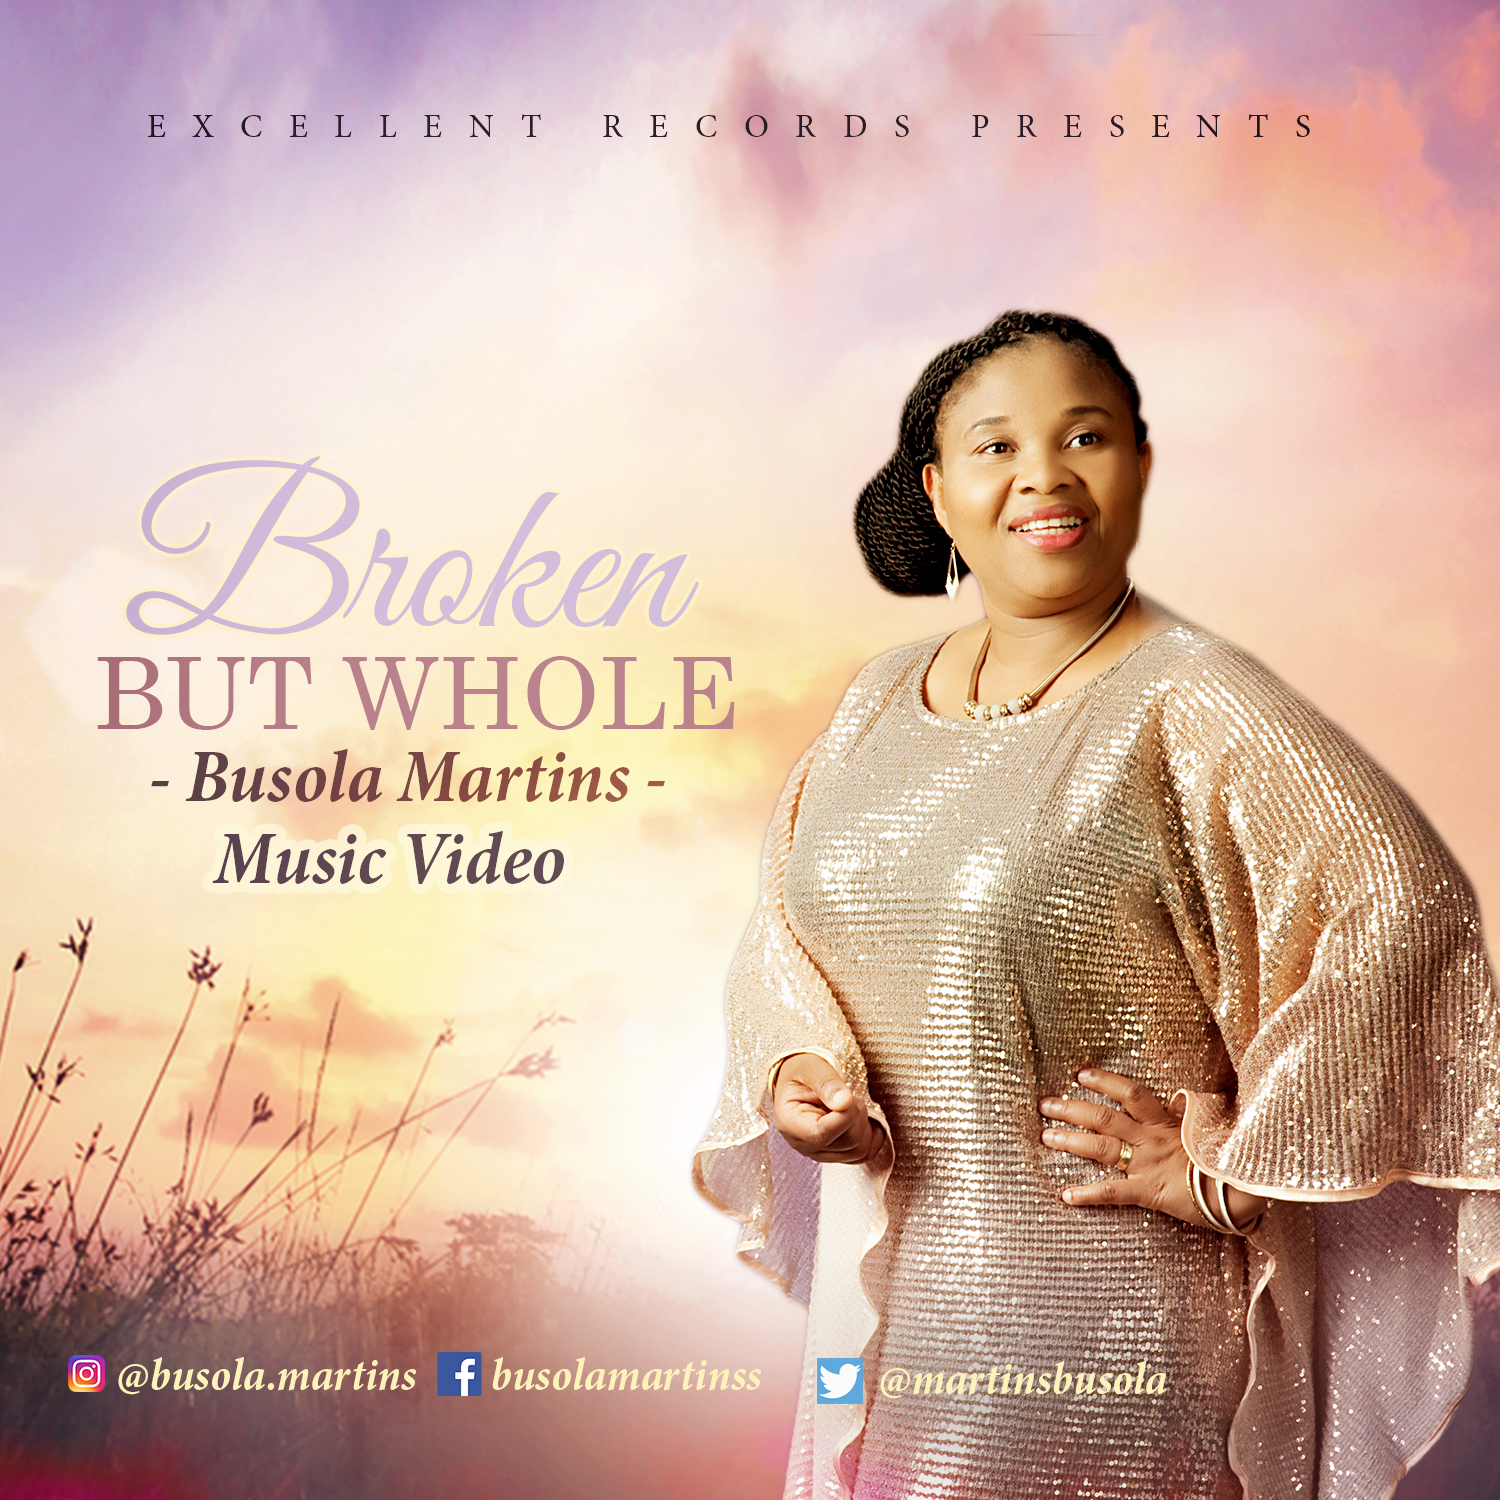 Broken But Whole ~ Busola Martins